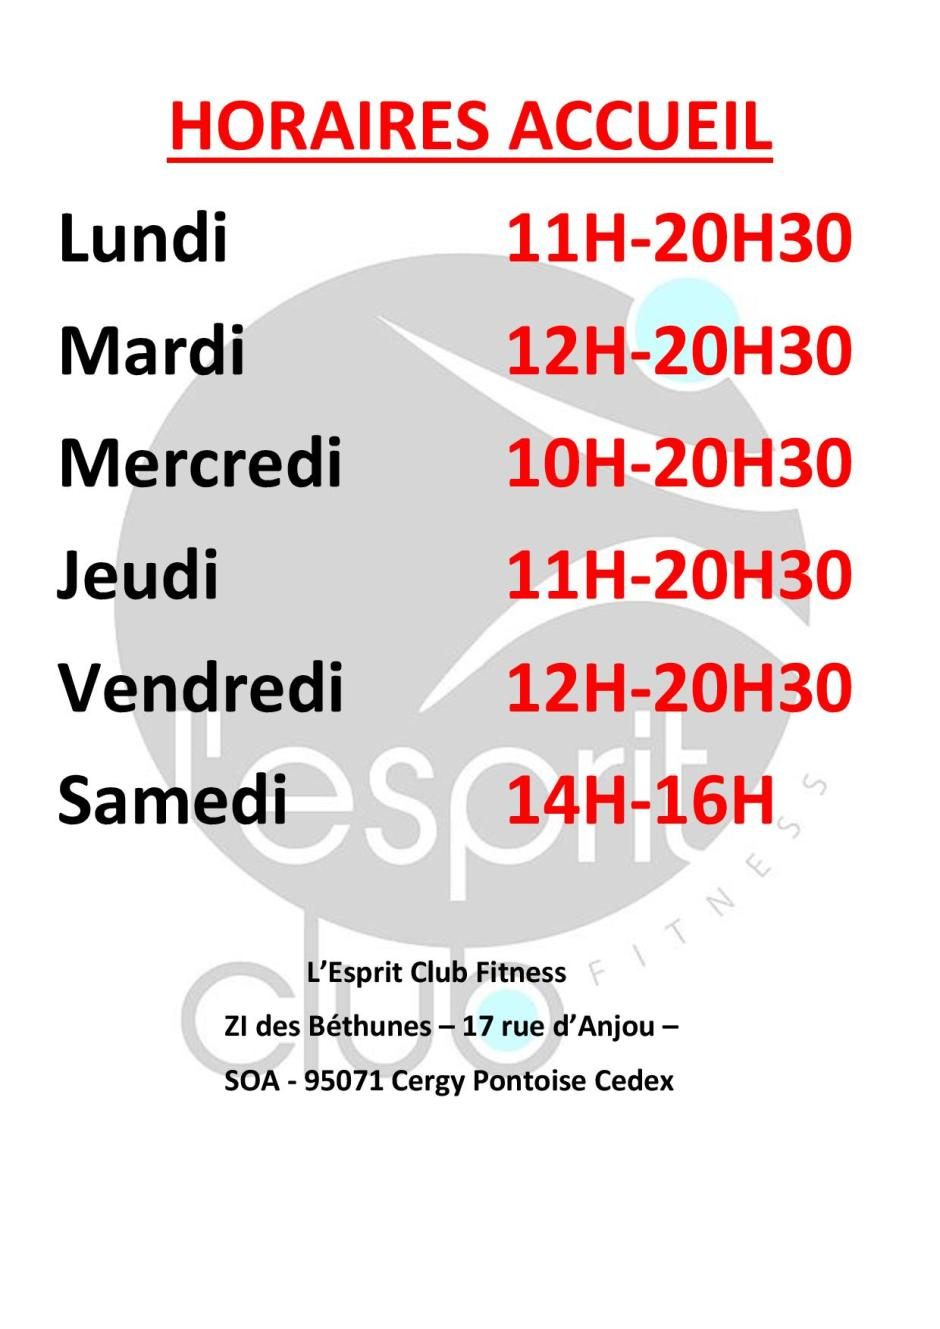 horaires-accueil-page-001